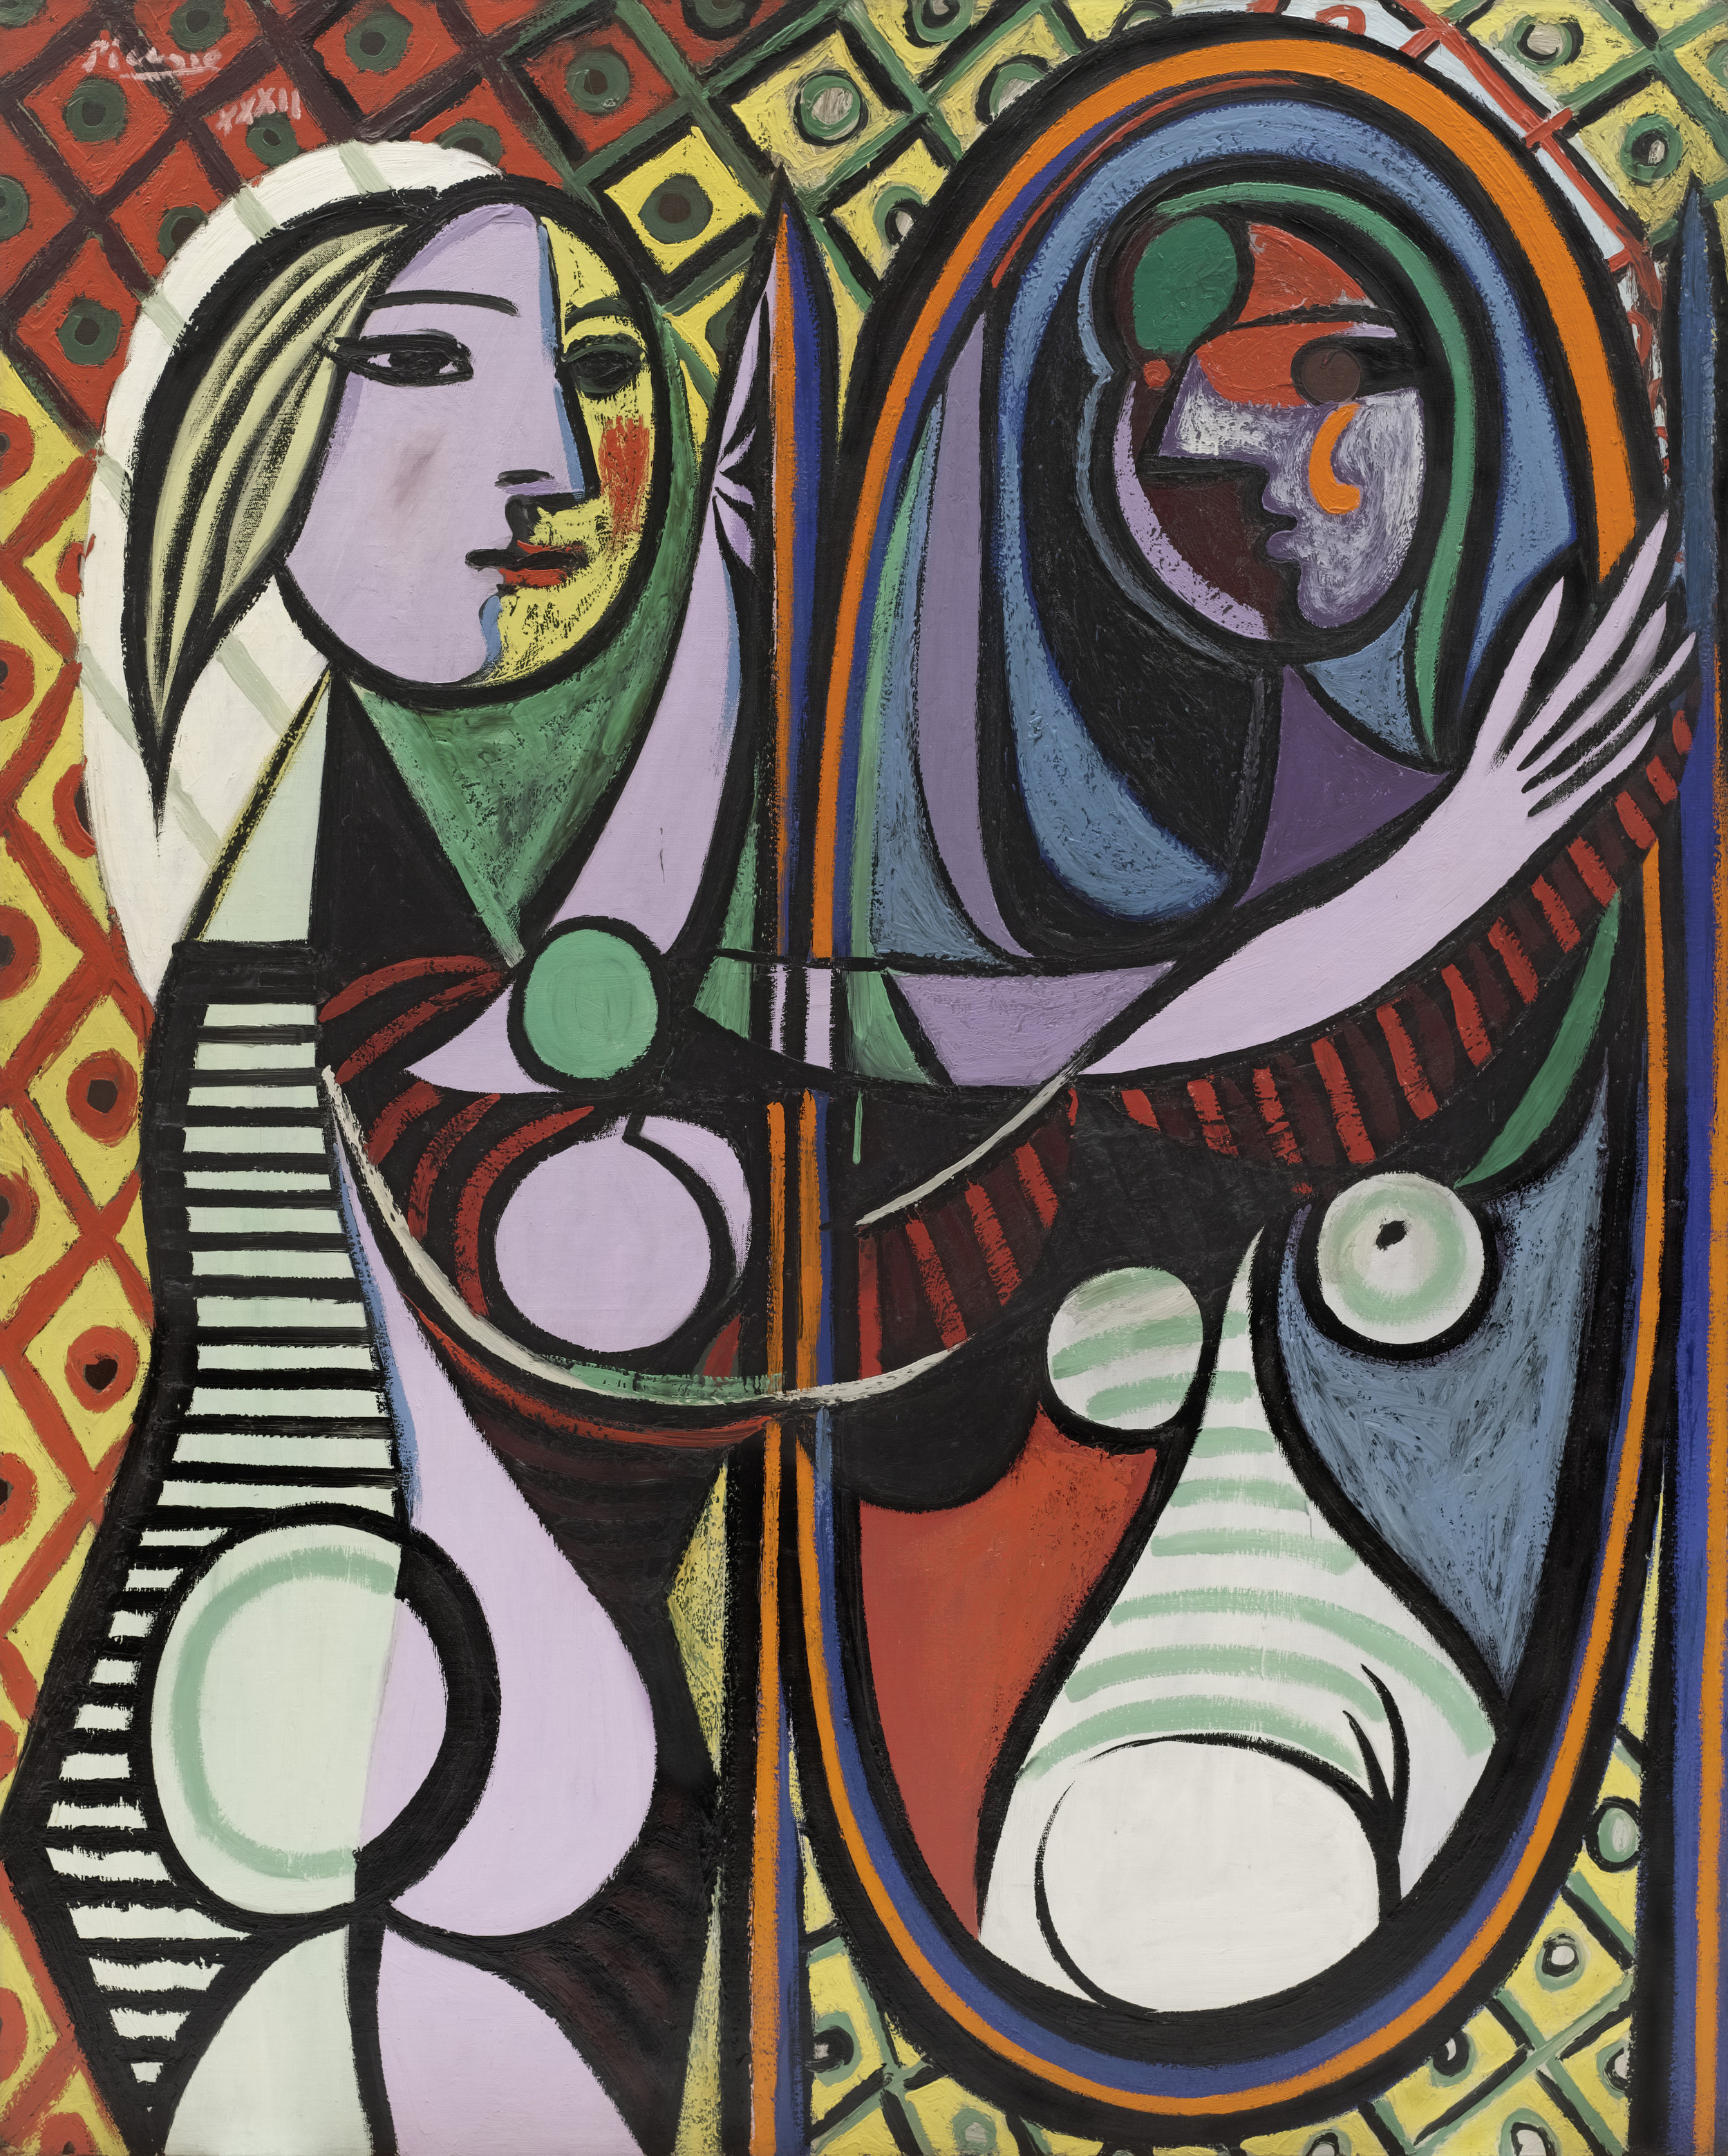 Pablo Picasso ,  Girl before a Mirror , 1932 © 2018 Estate of Pablo Picasso / Artists Rights Society (ARS), New York